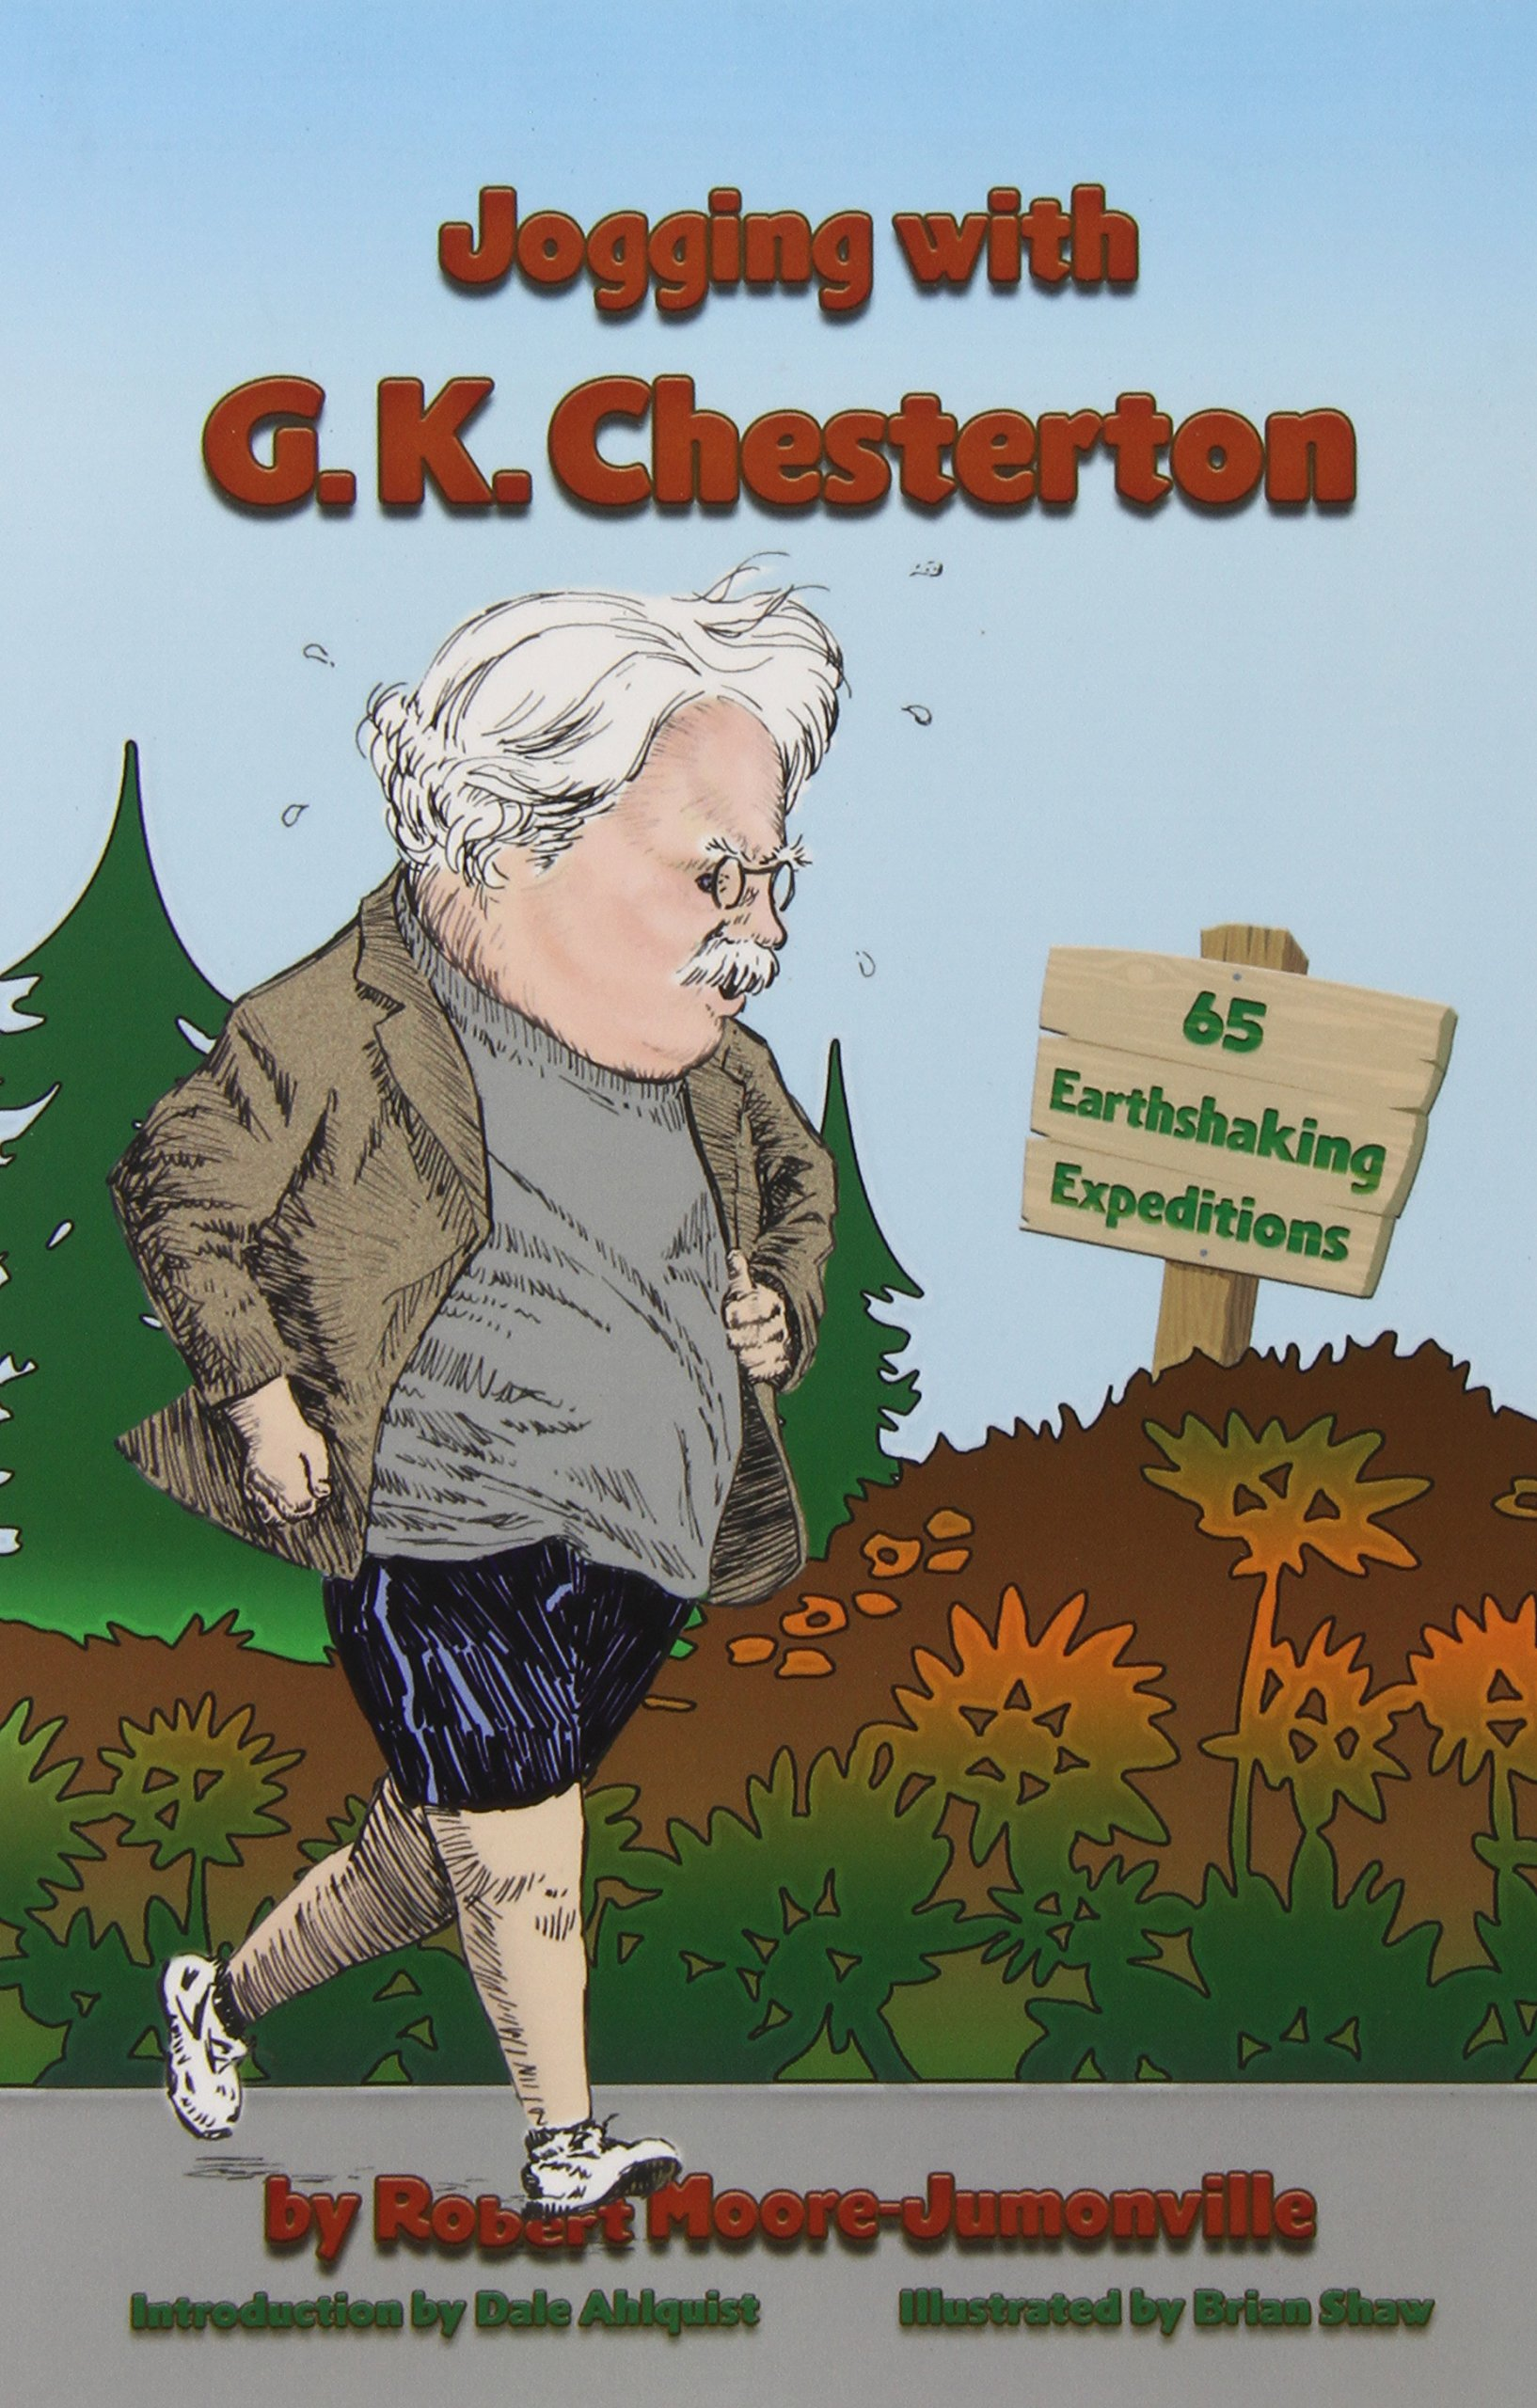 Jogging with Chesterton